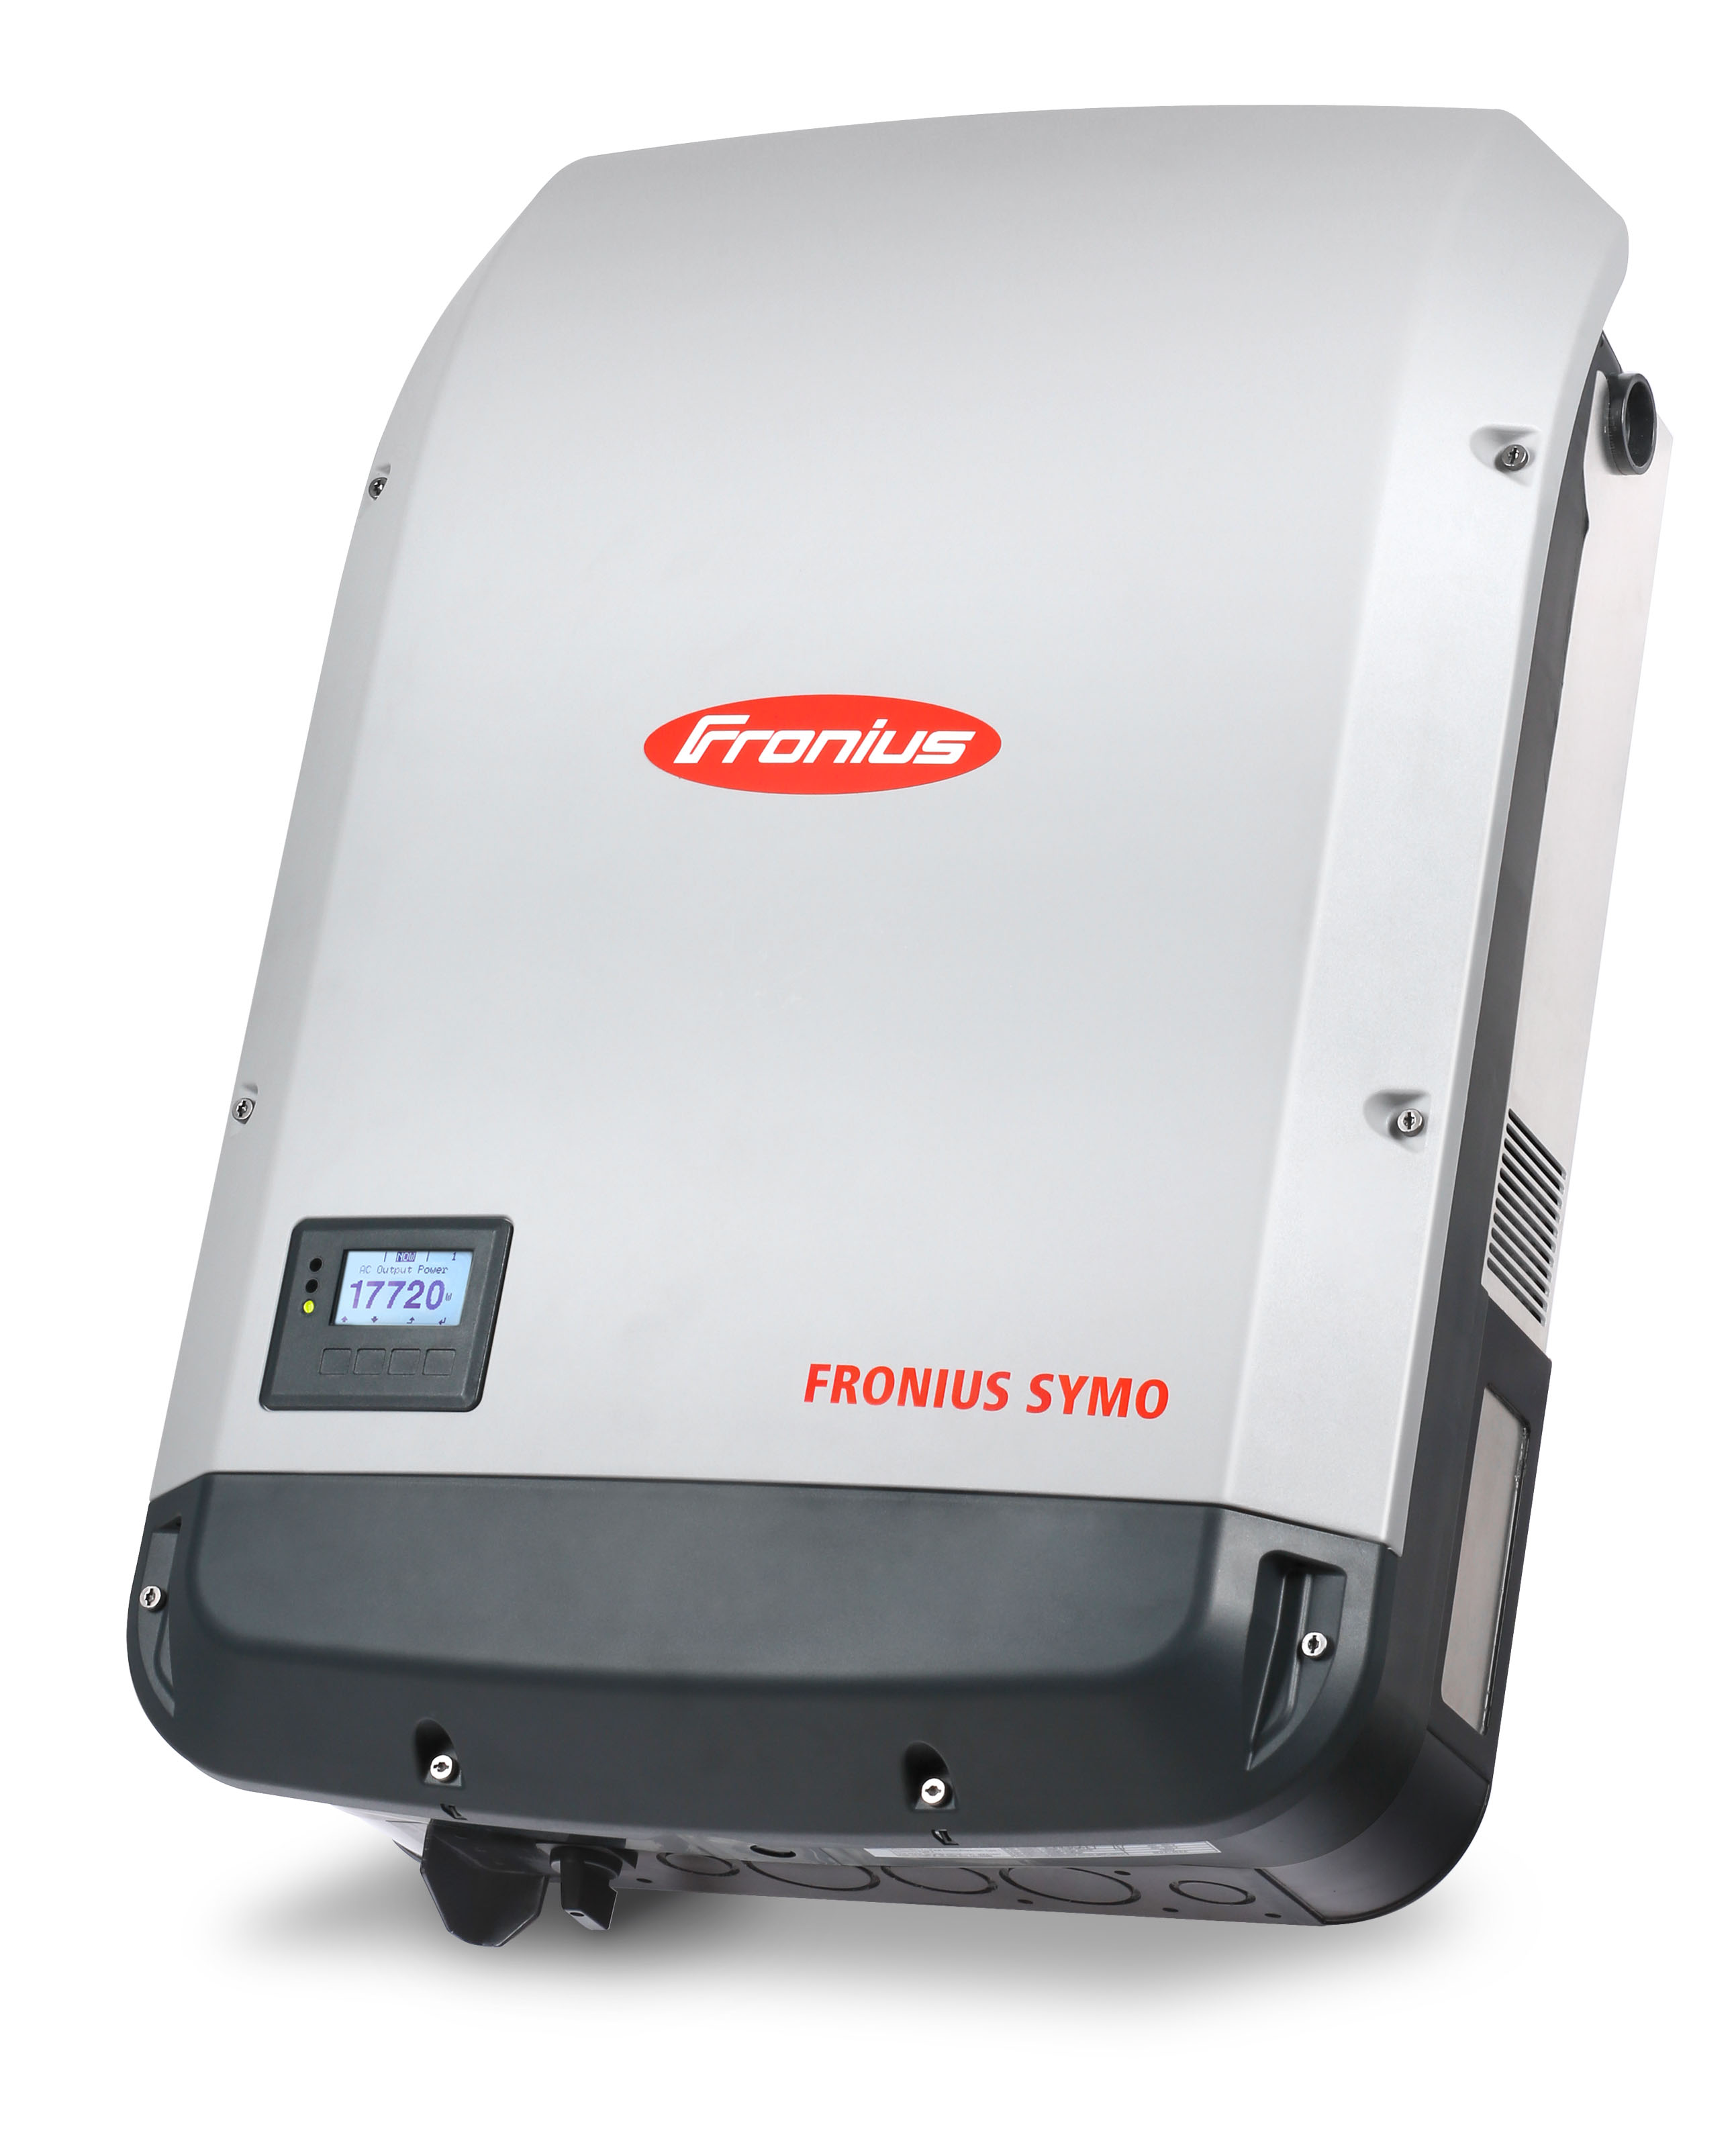 FRONIUS, SYMO 12.0-3 208/240, NON-ISOLATED STRING INVERTER, 12 KW, 208 VAC, LITE - NO DATAMANAGER 2.0 CARD